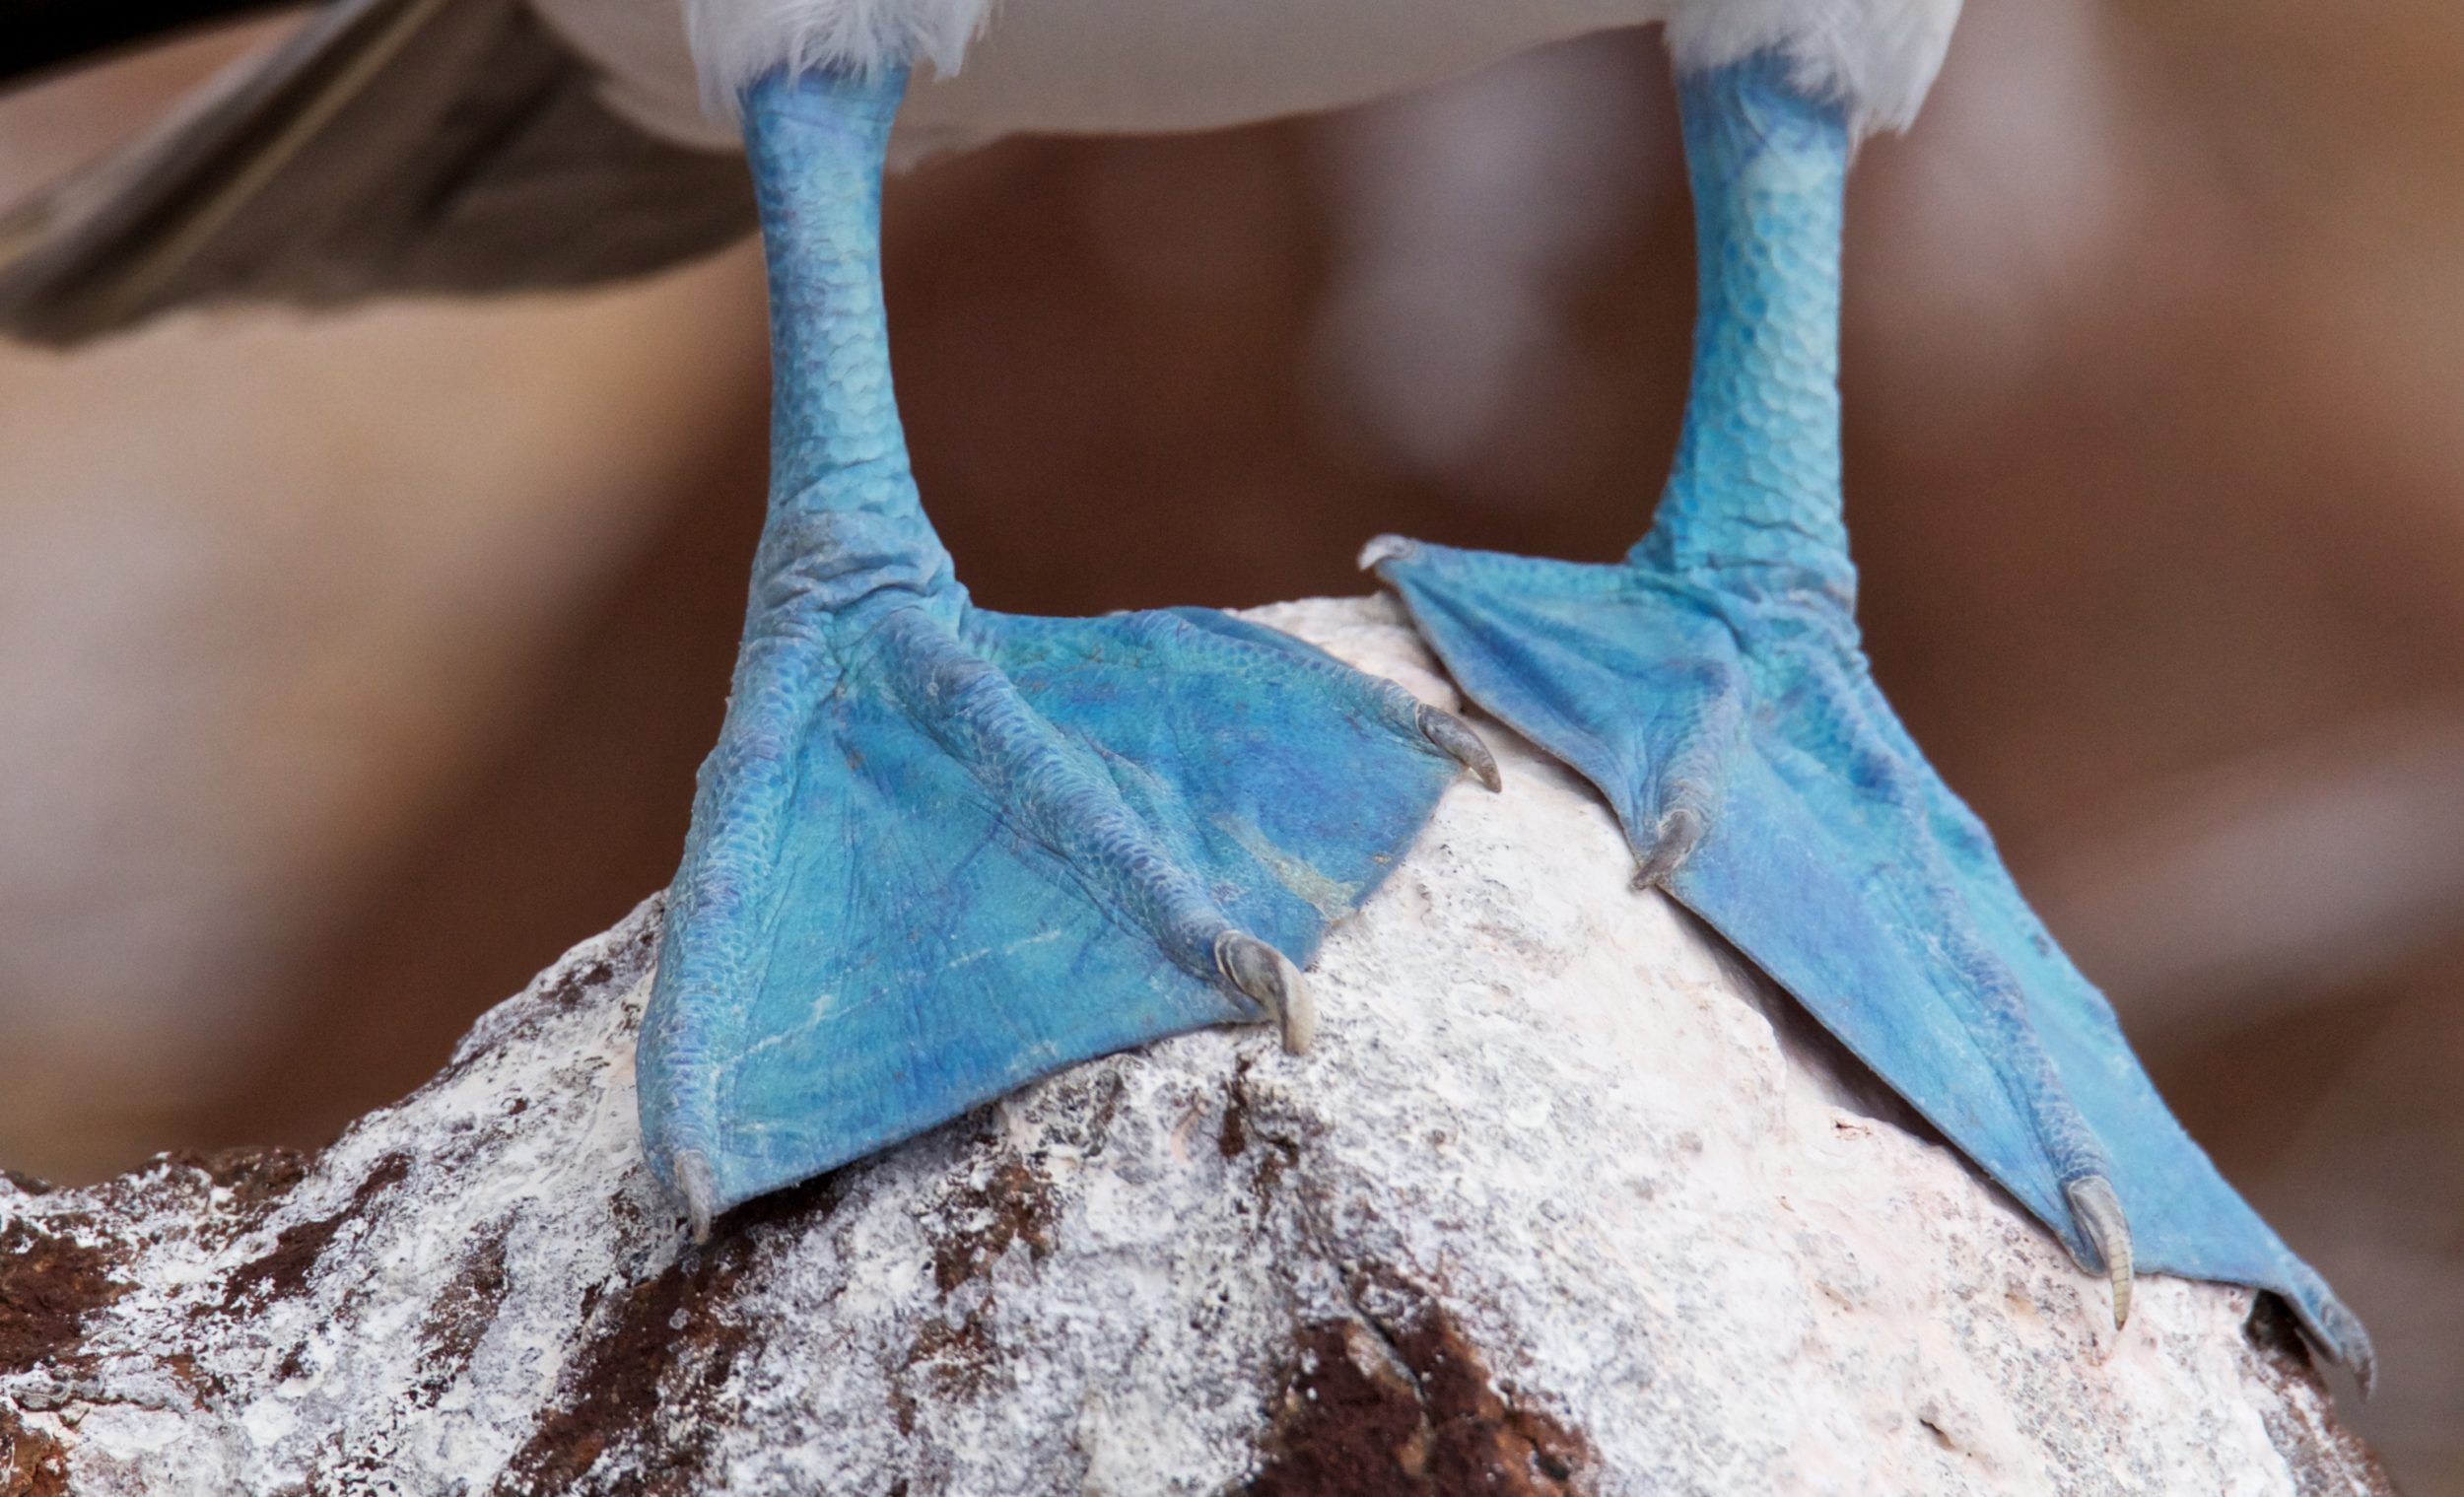 The feet of the blue footed booby bird